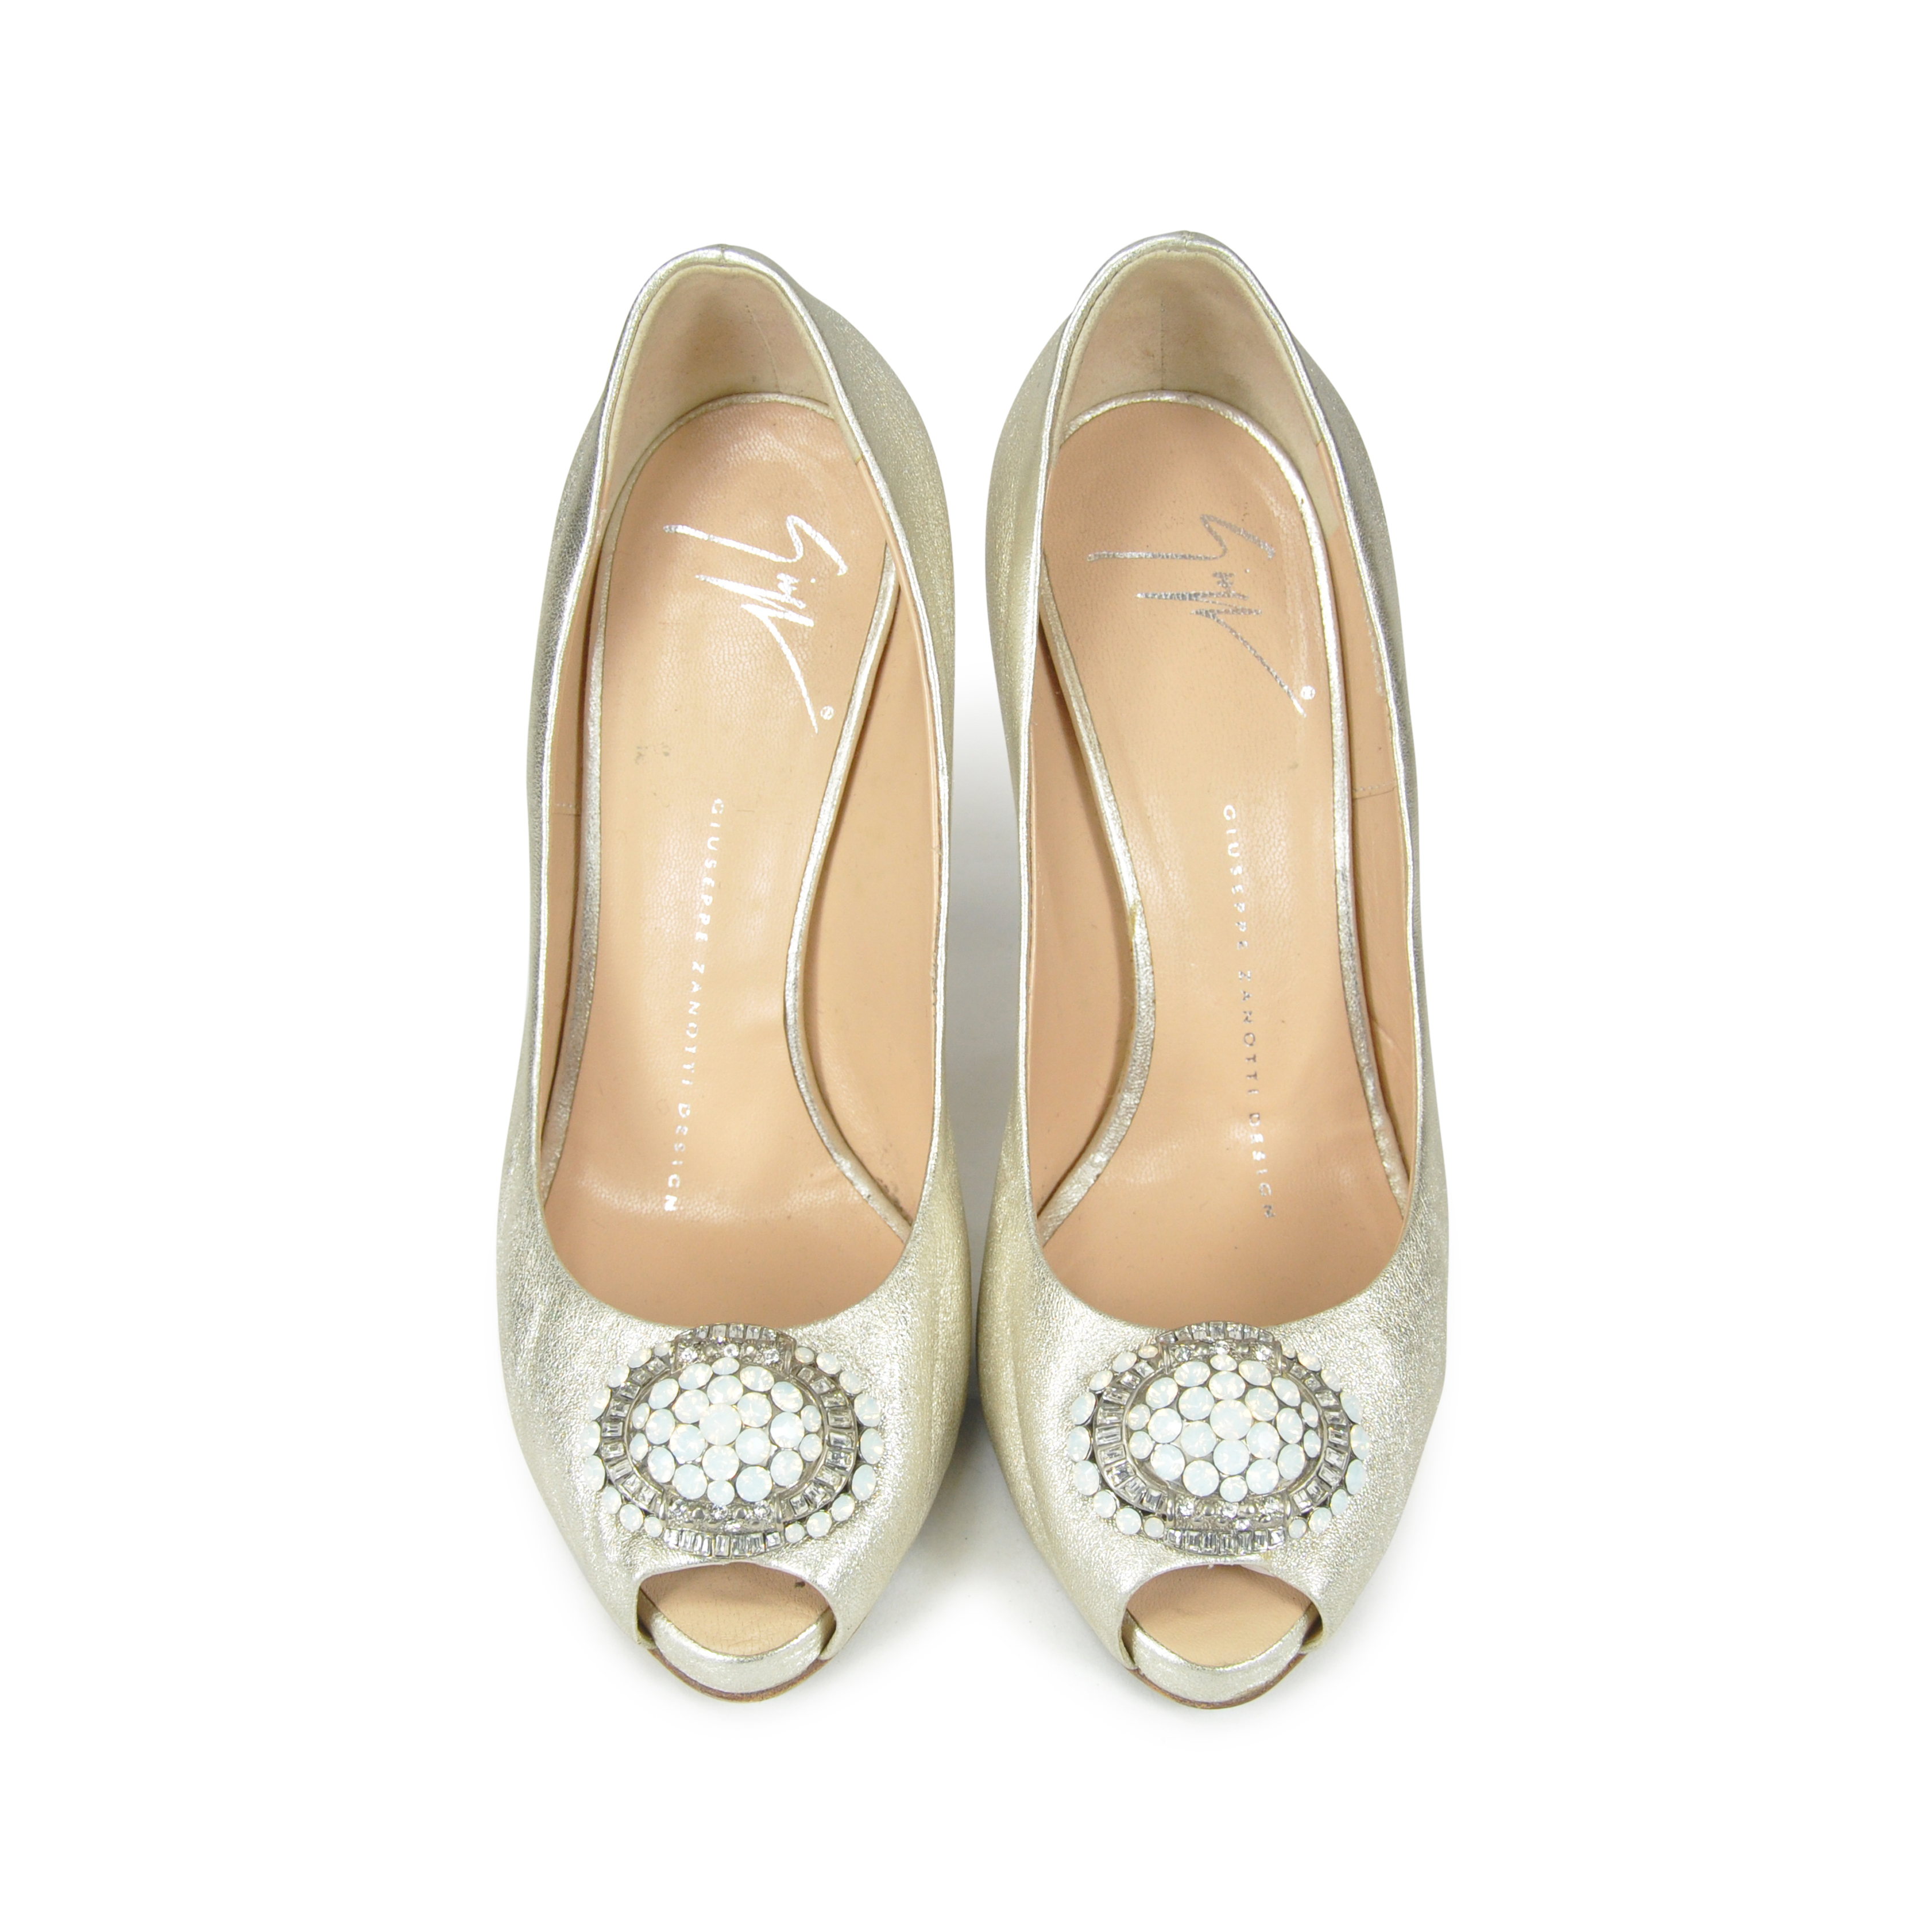 a0e0b436fb Authentic Second Hand Giuseppe Zanotti Peep Toe with Ornament  (PSS-060-00001) | THE FIFTH COLLECTION